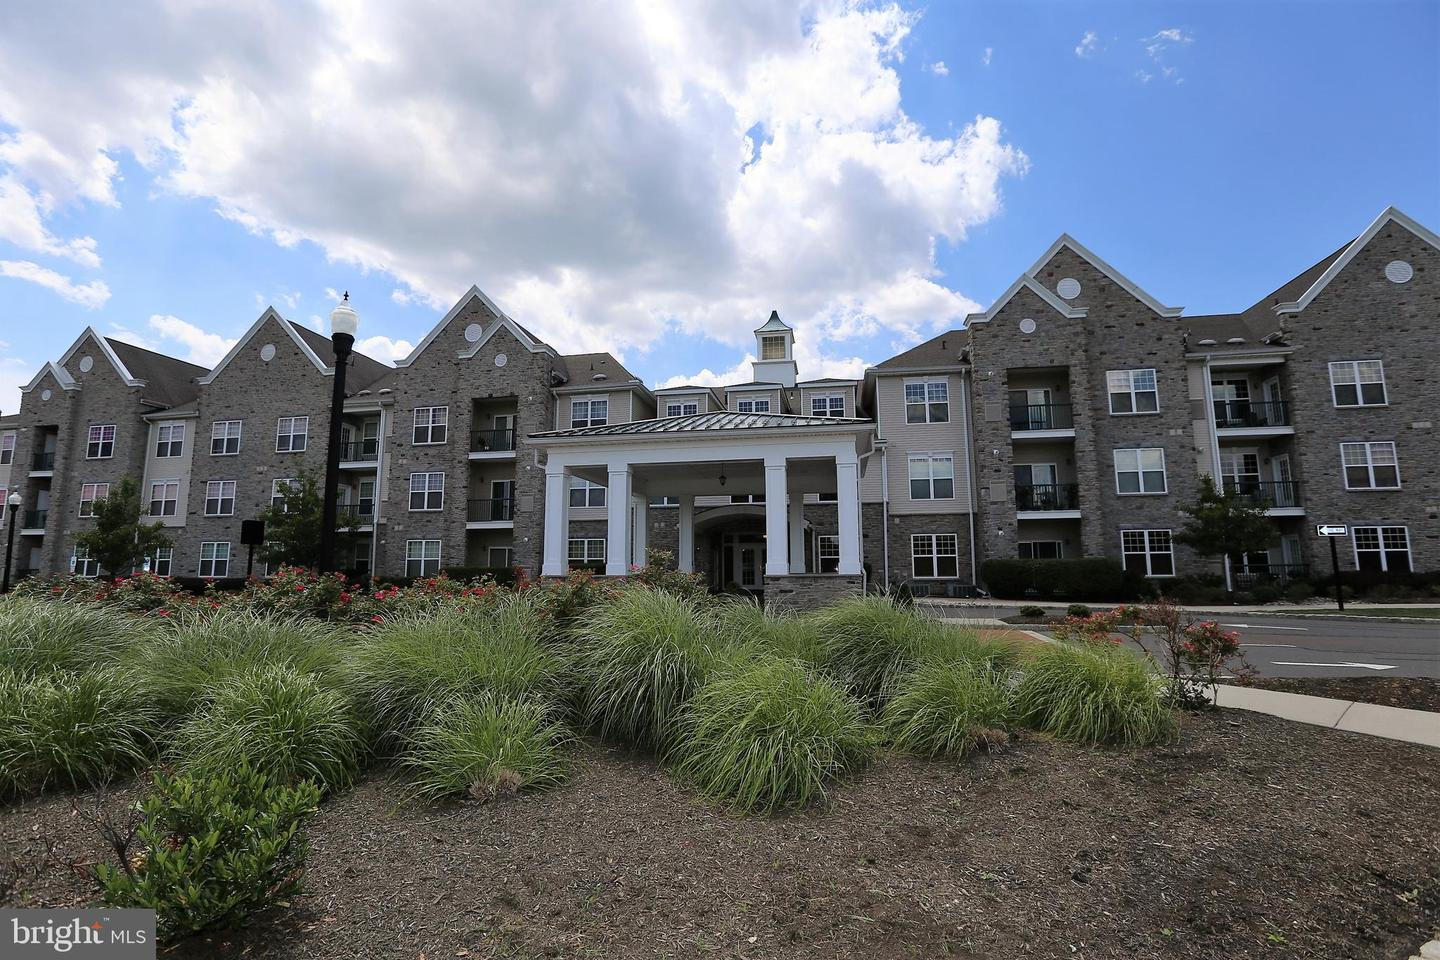 Single Family Home for Sale at 100 MIDDLESEX BLVD #114 Plainsboro, New Jersey 08536 United StatesMunicipality: Plainsboro Township